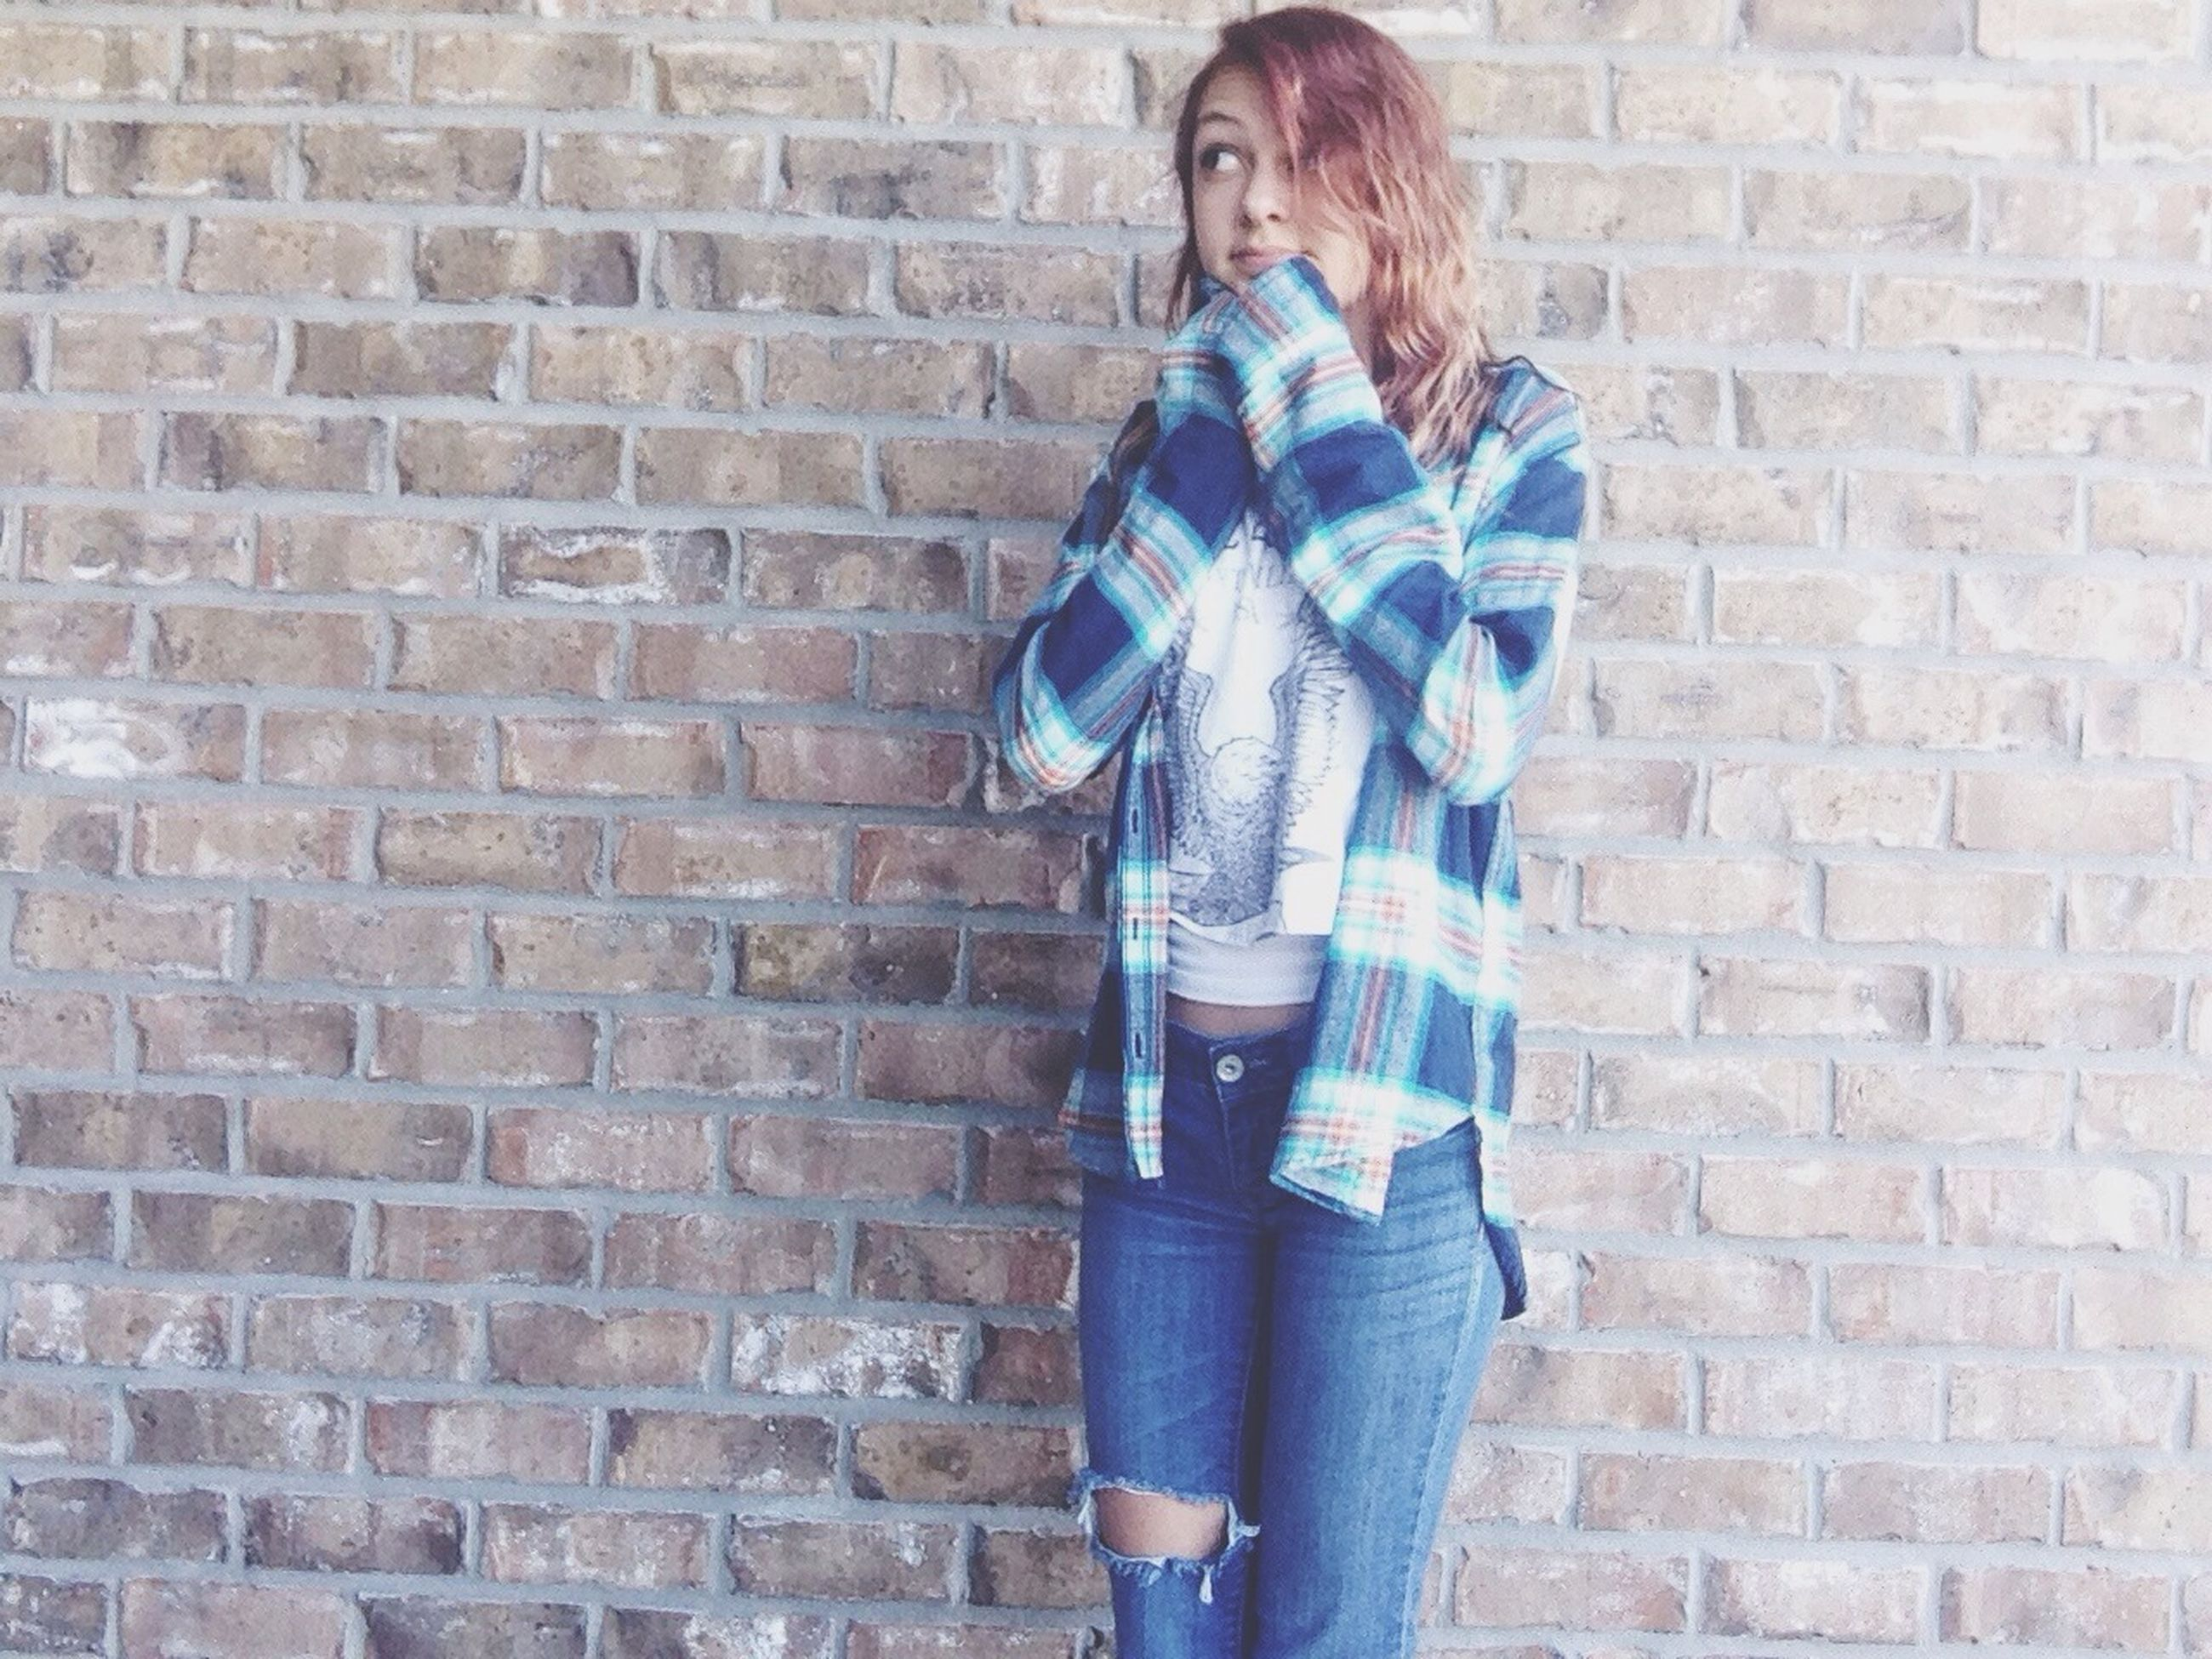 brick wall, wall - building feature, lifestyles, casual clothing, standing, young adult, front view, built structure, architecture, young women, building exterior, leisure activity, wall, person, fashion, three quarter length, stone wall